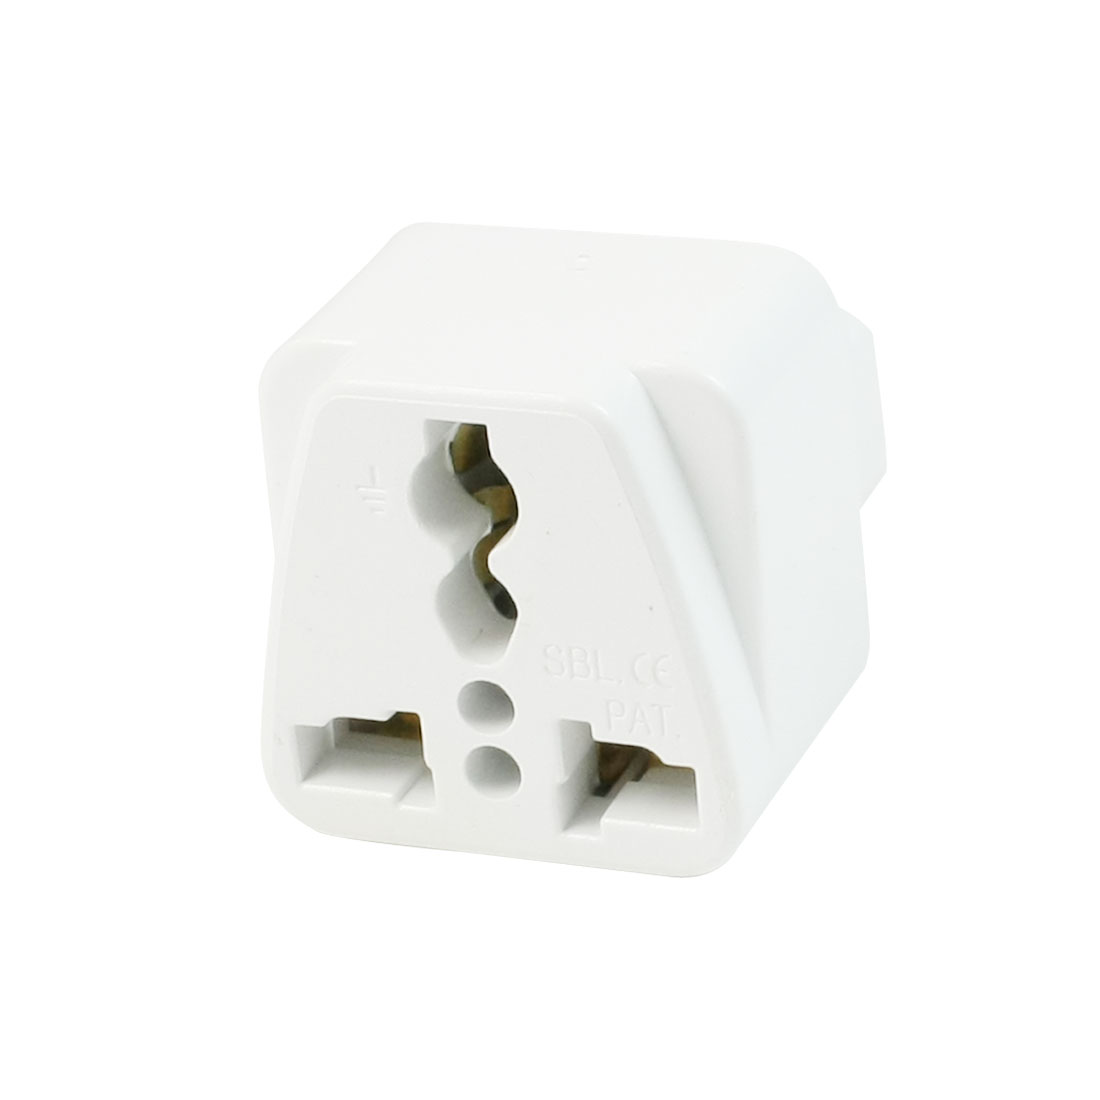 UK AU US Socket to C14 Plug Travel Power Adapter White AC 250V/10A 125V/15A